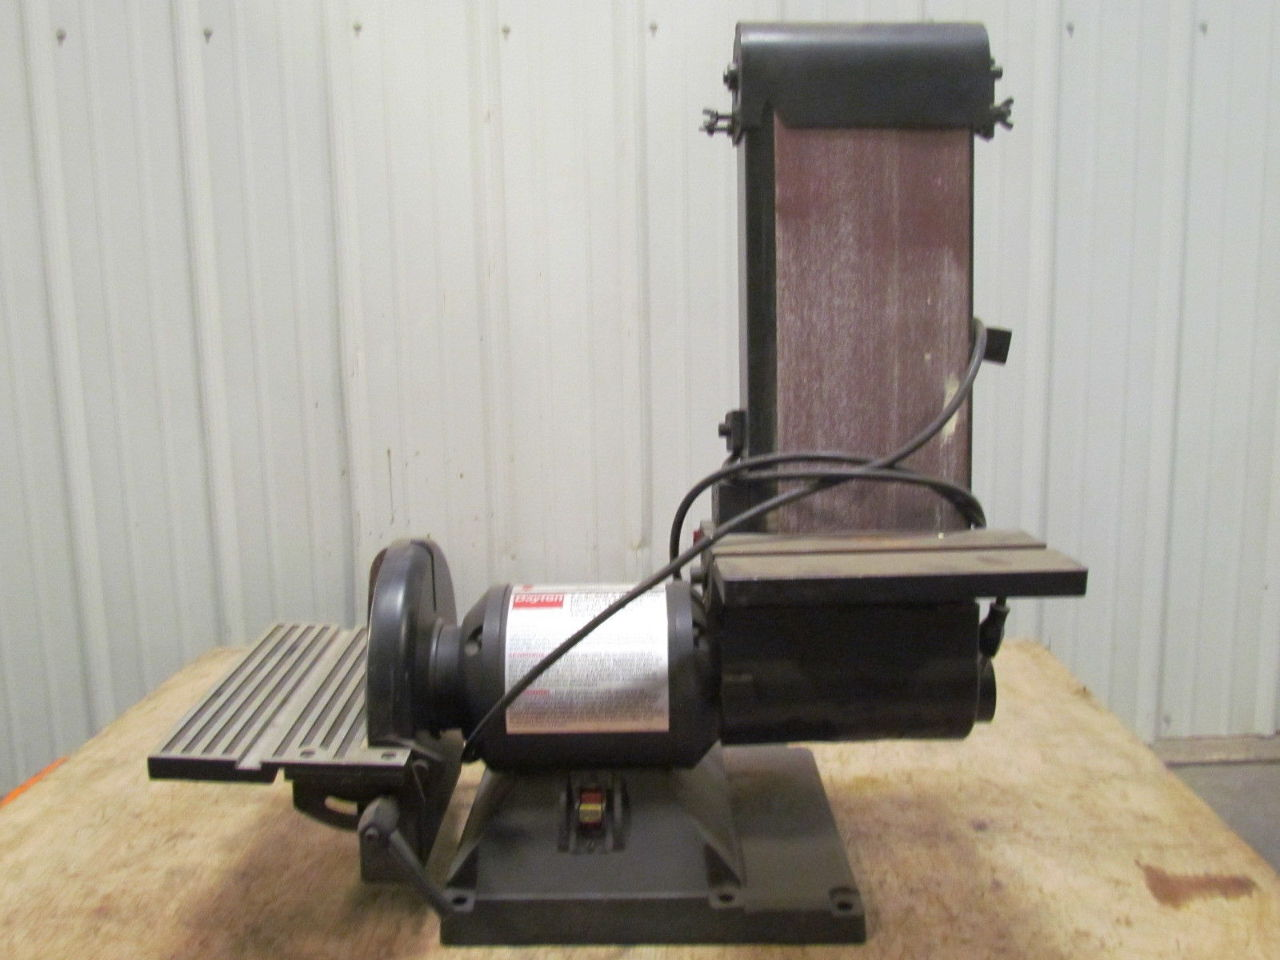 Benchtop belt disc sander car interior design Bench belt sander